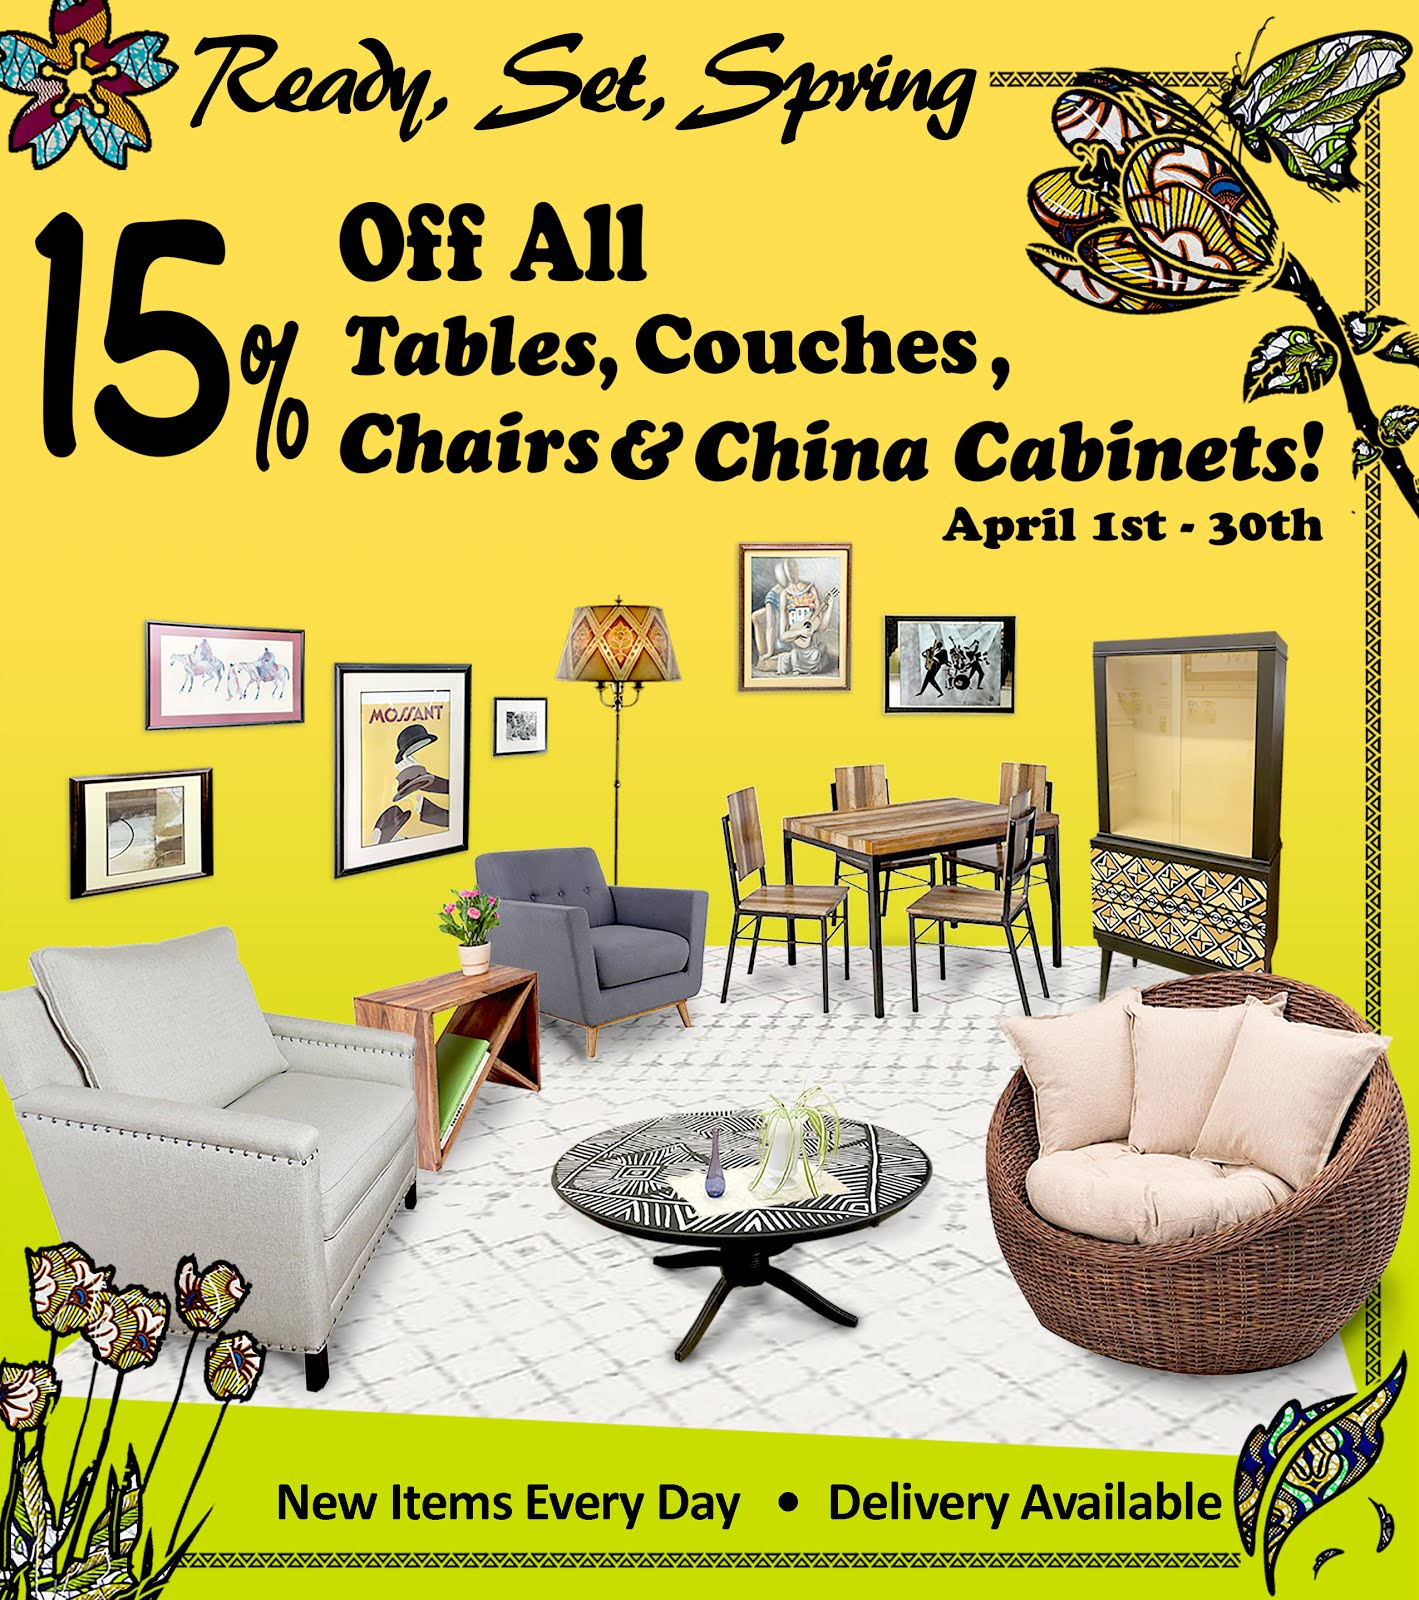 Ready, Set, Spring Sale--Now Sofas are 15% Off Too!